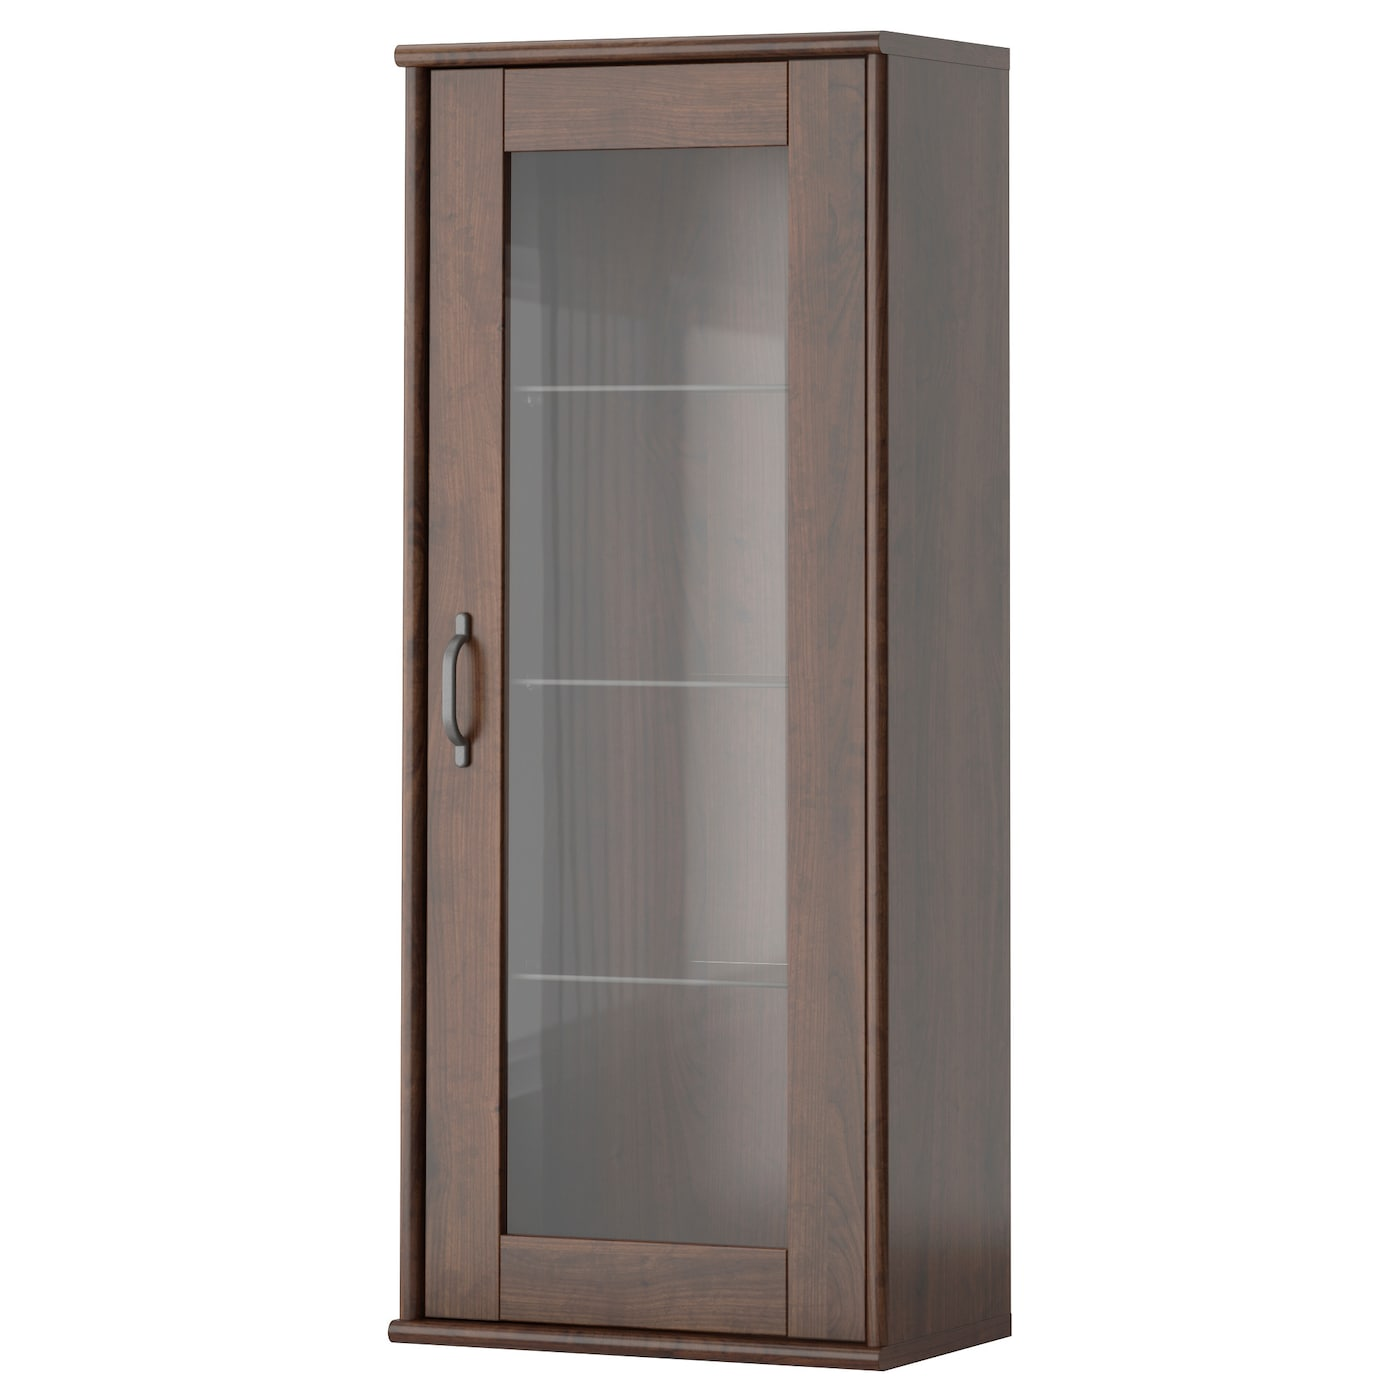 Tockarp Wall Cabinet With Glass Door Brown 38x92 Cm Ikea